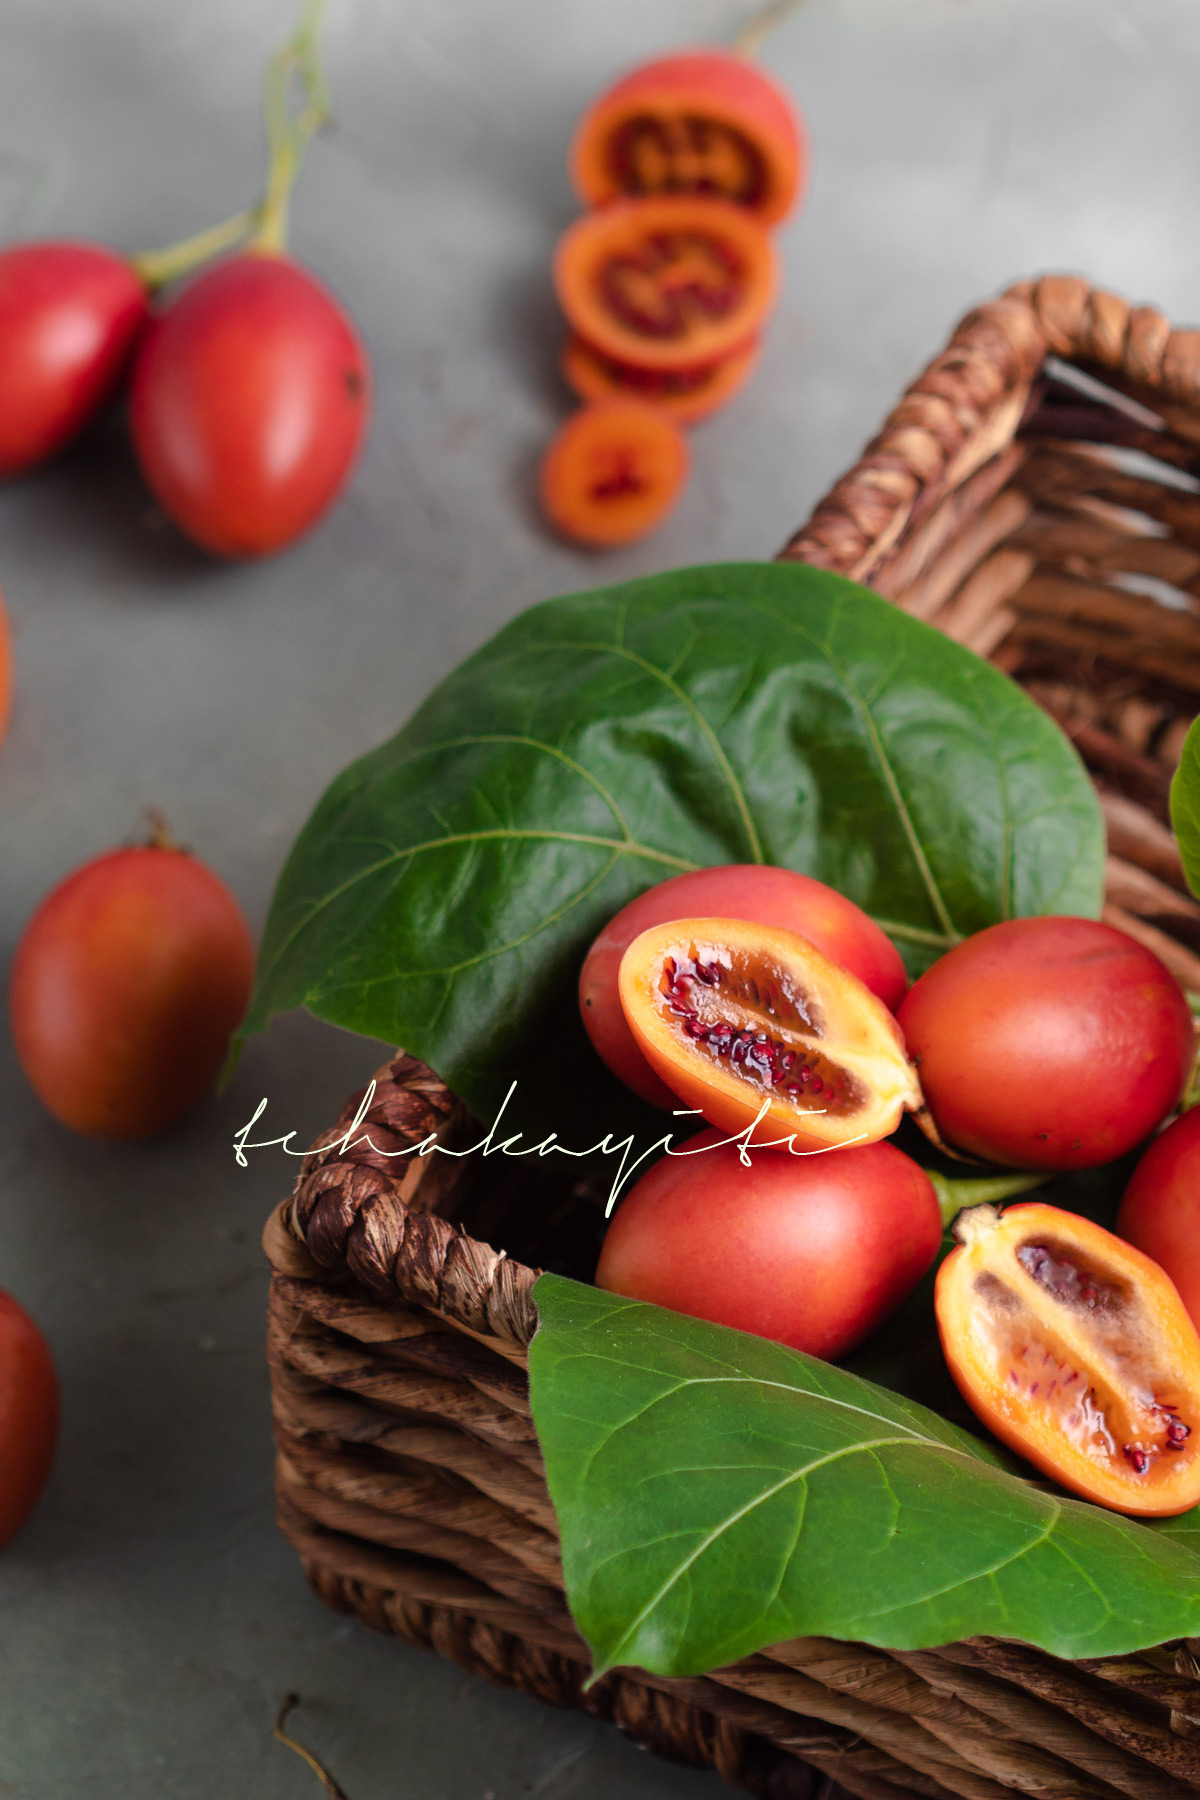 Tamarillos, also known as tree tomato, make for a bizarre fruit. Sweet and perfumy, their flesh may remind you of a distant cousin of tomatoes. | tchakayiti.com